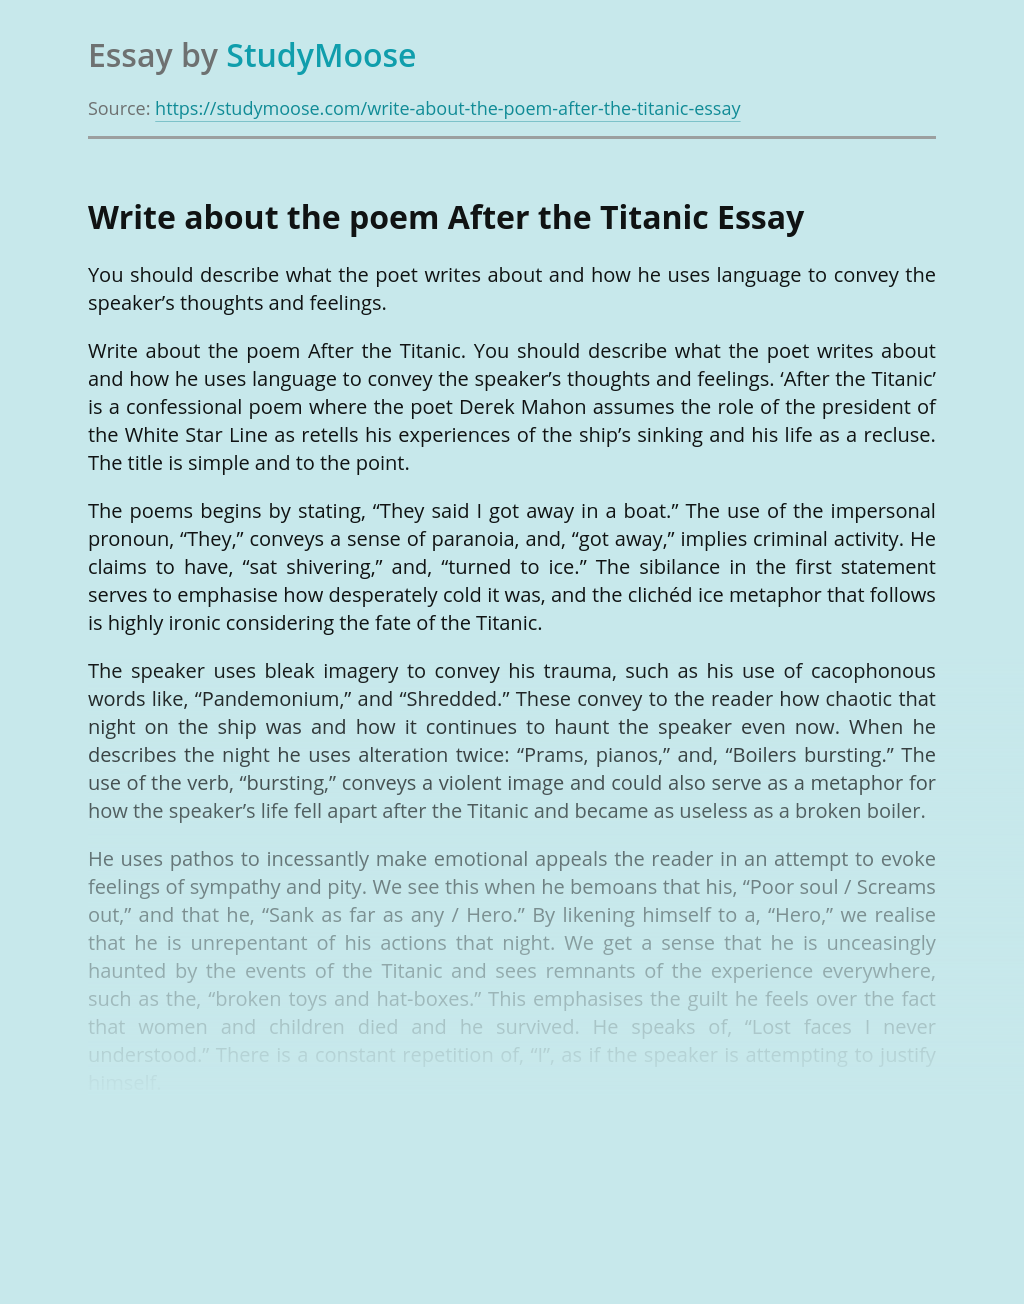 A Poem After the Titanic by Derek Mahon